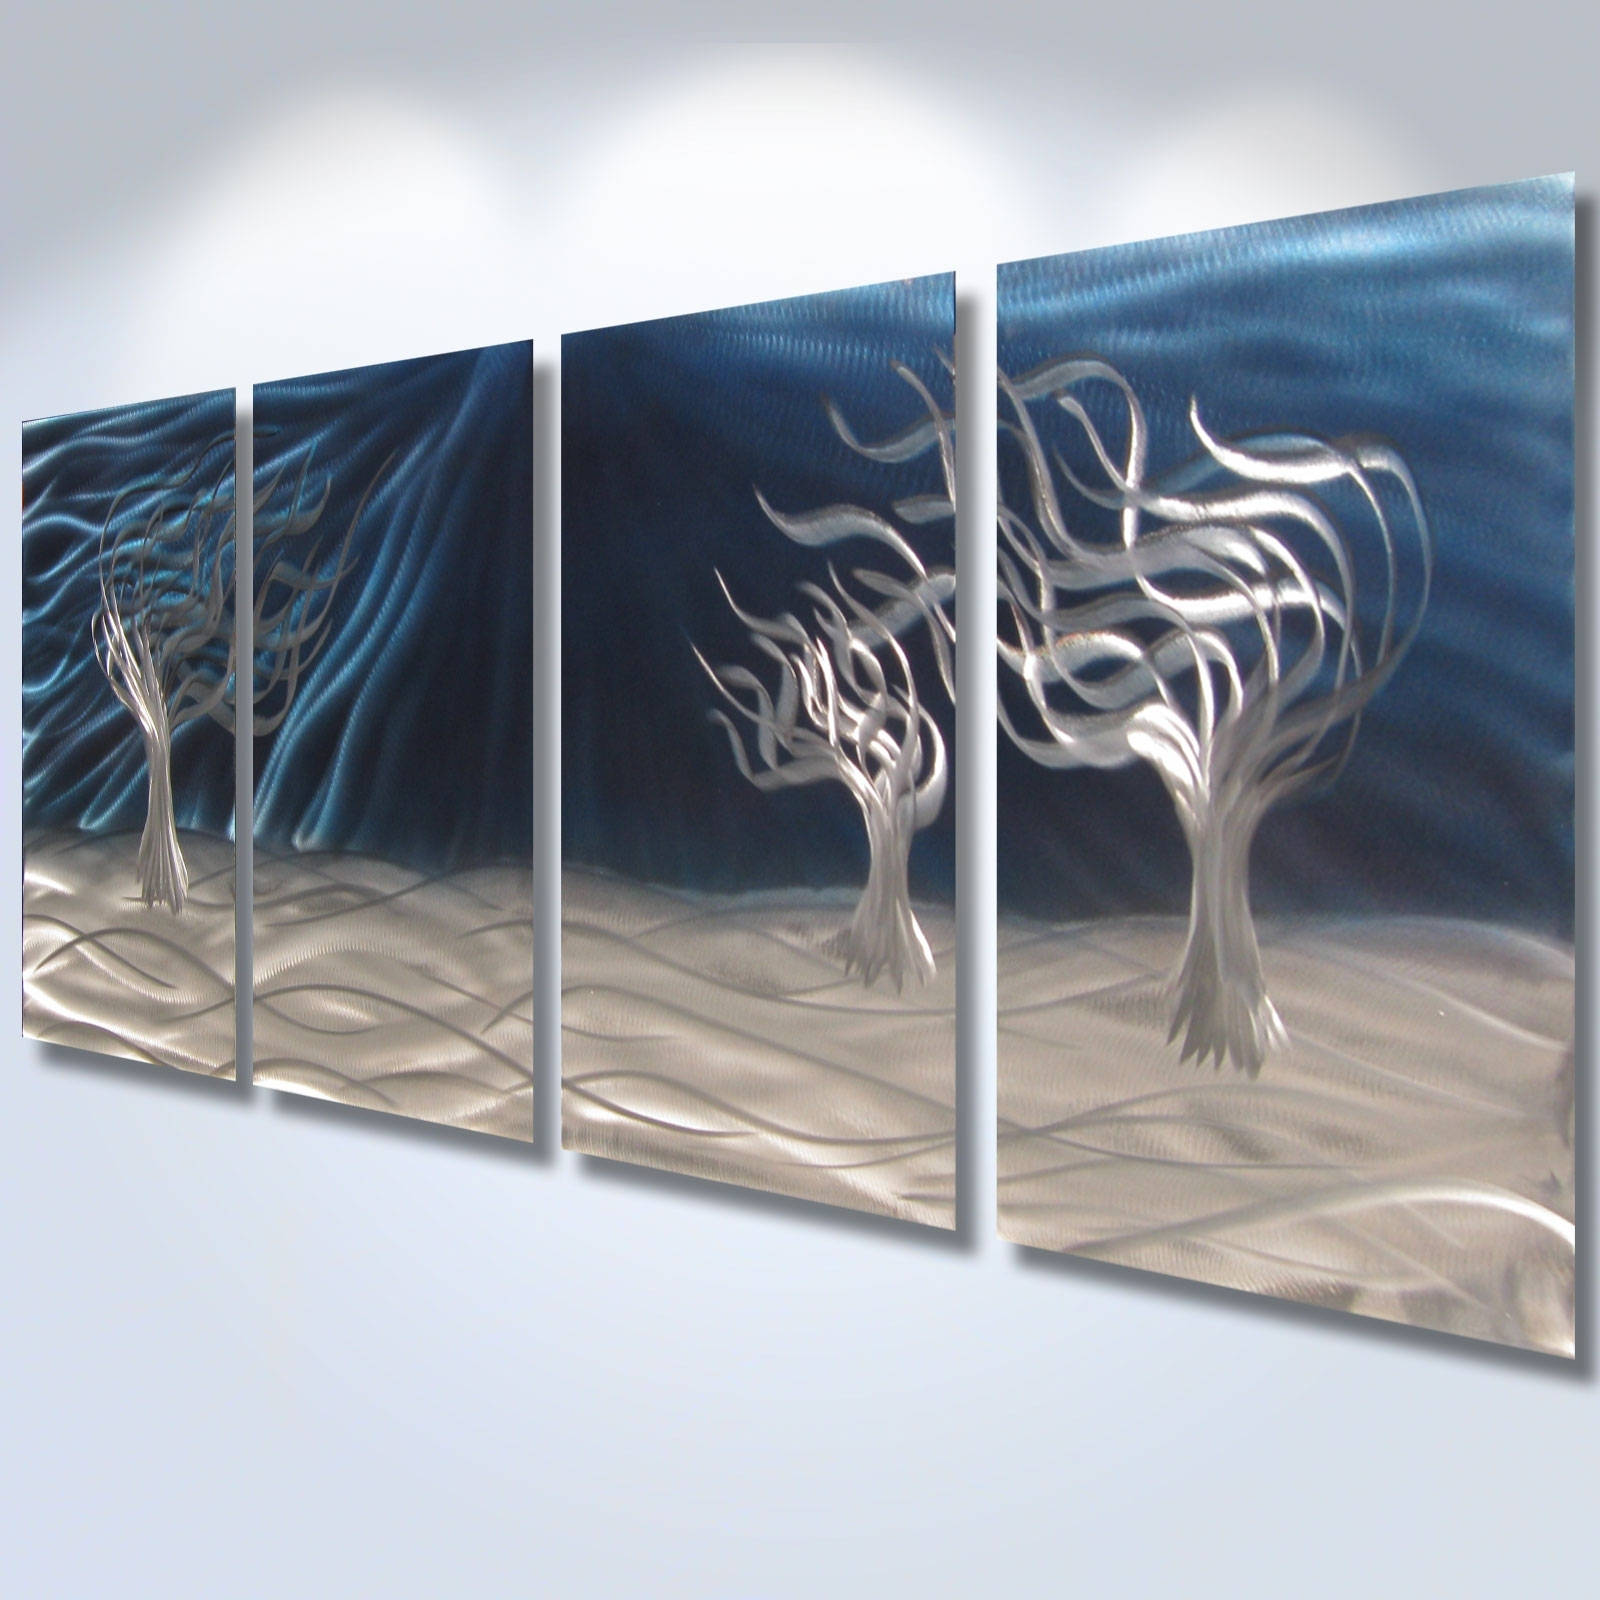 3 Trees Blue – Abstract Metal Wall Art Contemporary Modern Decor Throughout Most Popular Abstract Metal Sculpture Wall Art (Gallery 12 of 20)